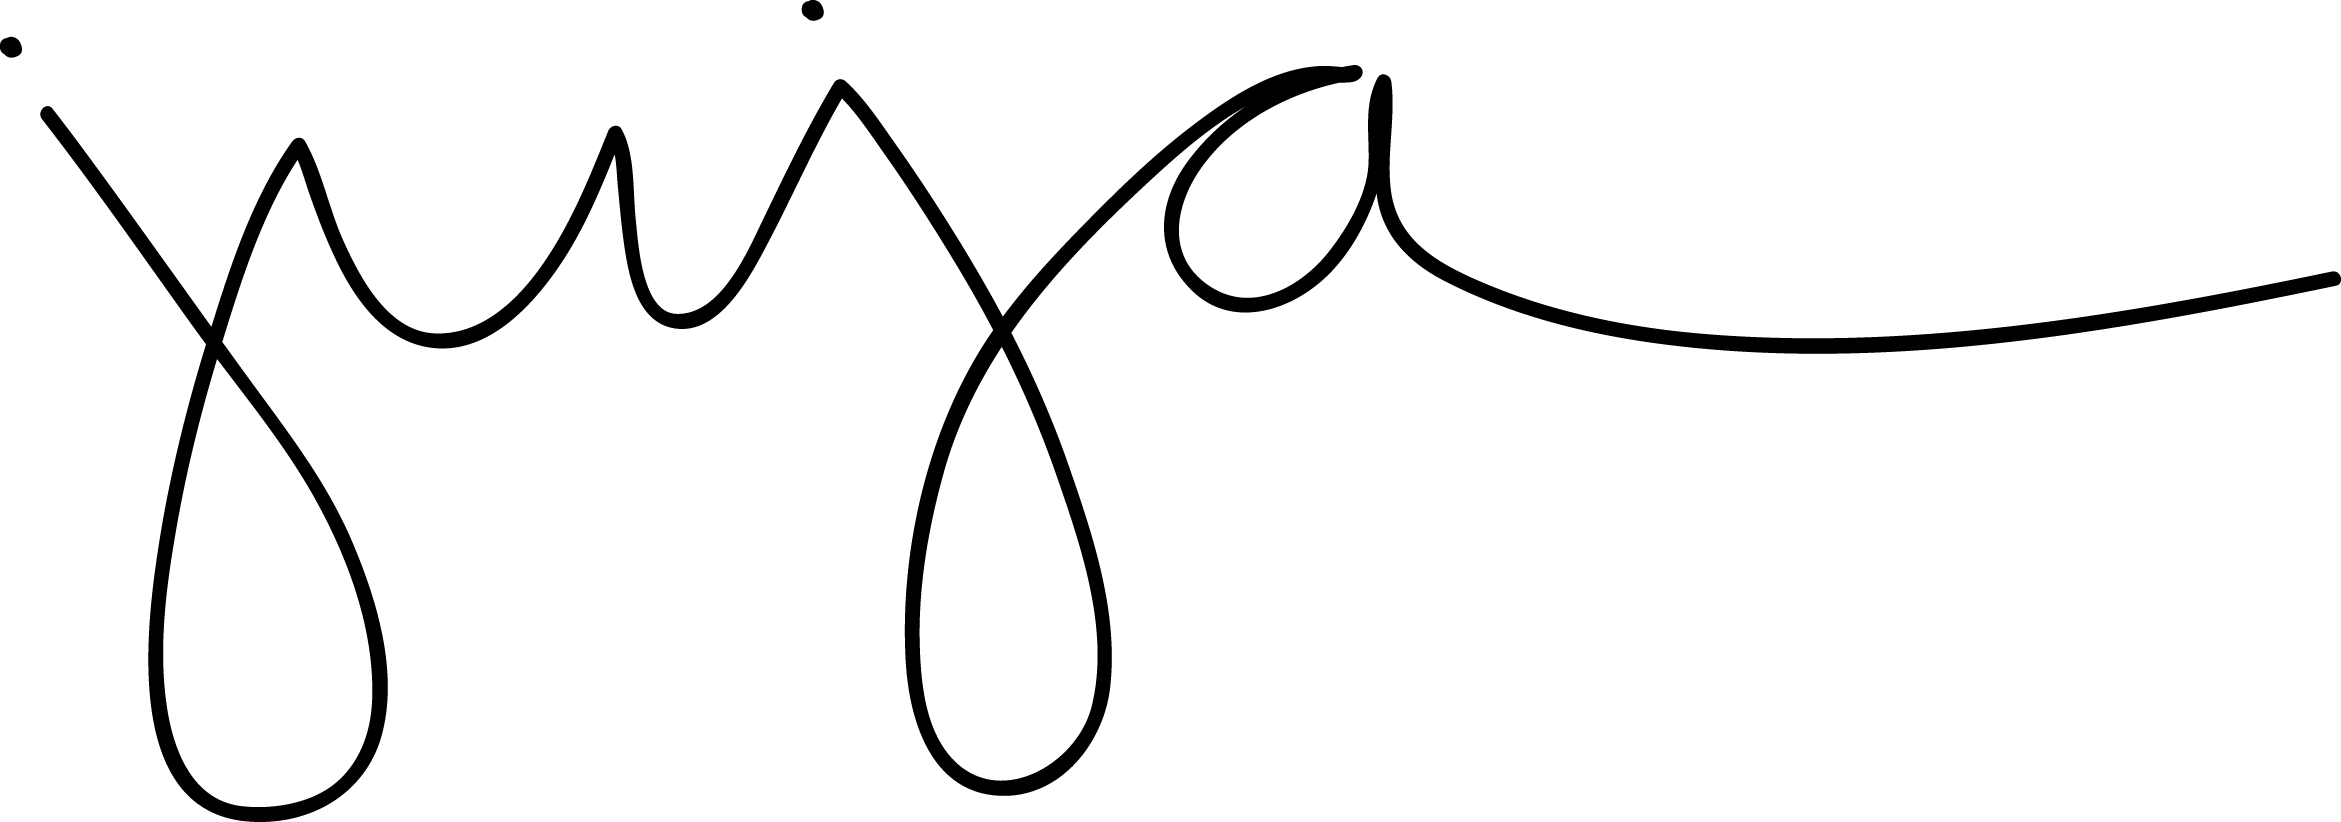 Julé CARRUTH Signature